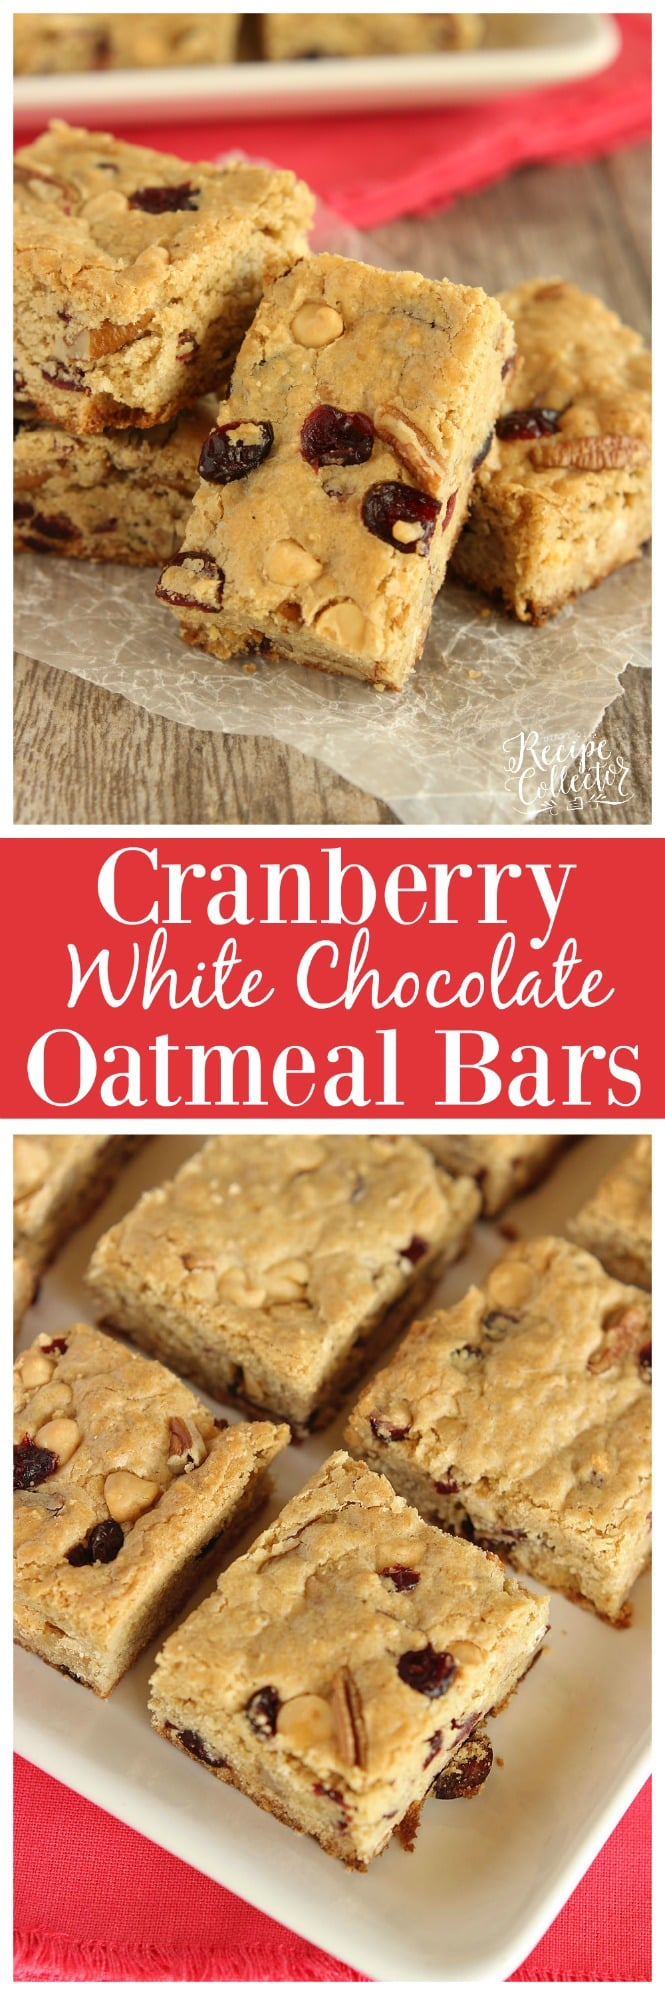 Cranberry White Chocolate Oatmeal Bars - A super easy cookie bar filled with dried cranberries, white chocolate chips, pecans, and oatmeal.